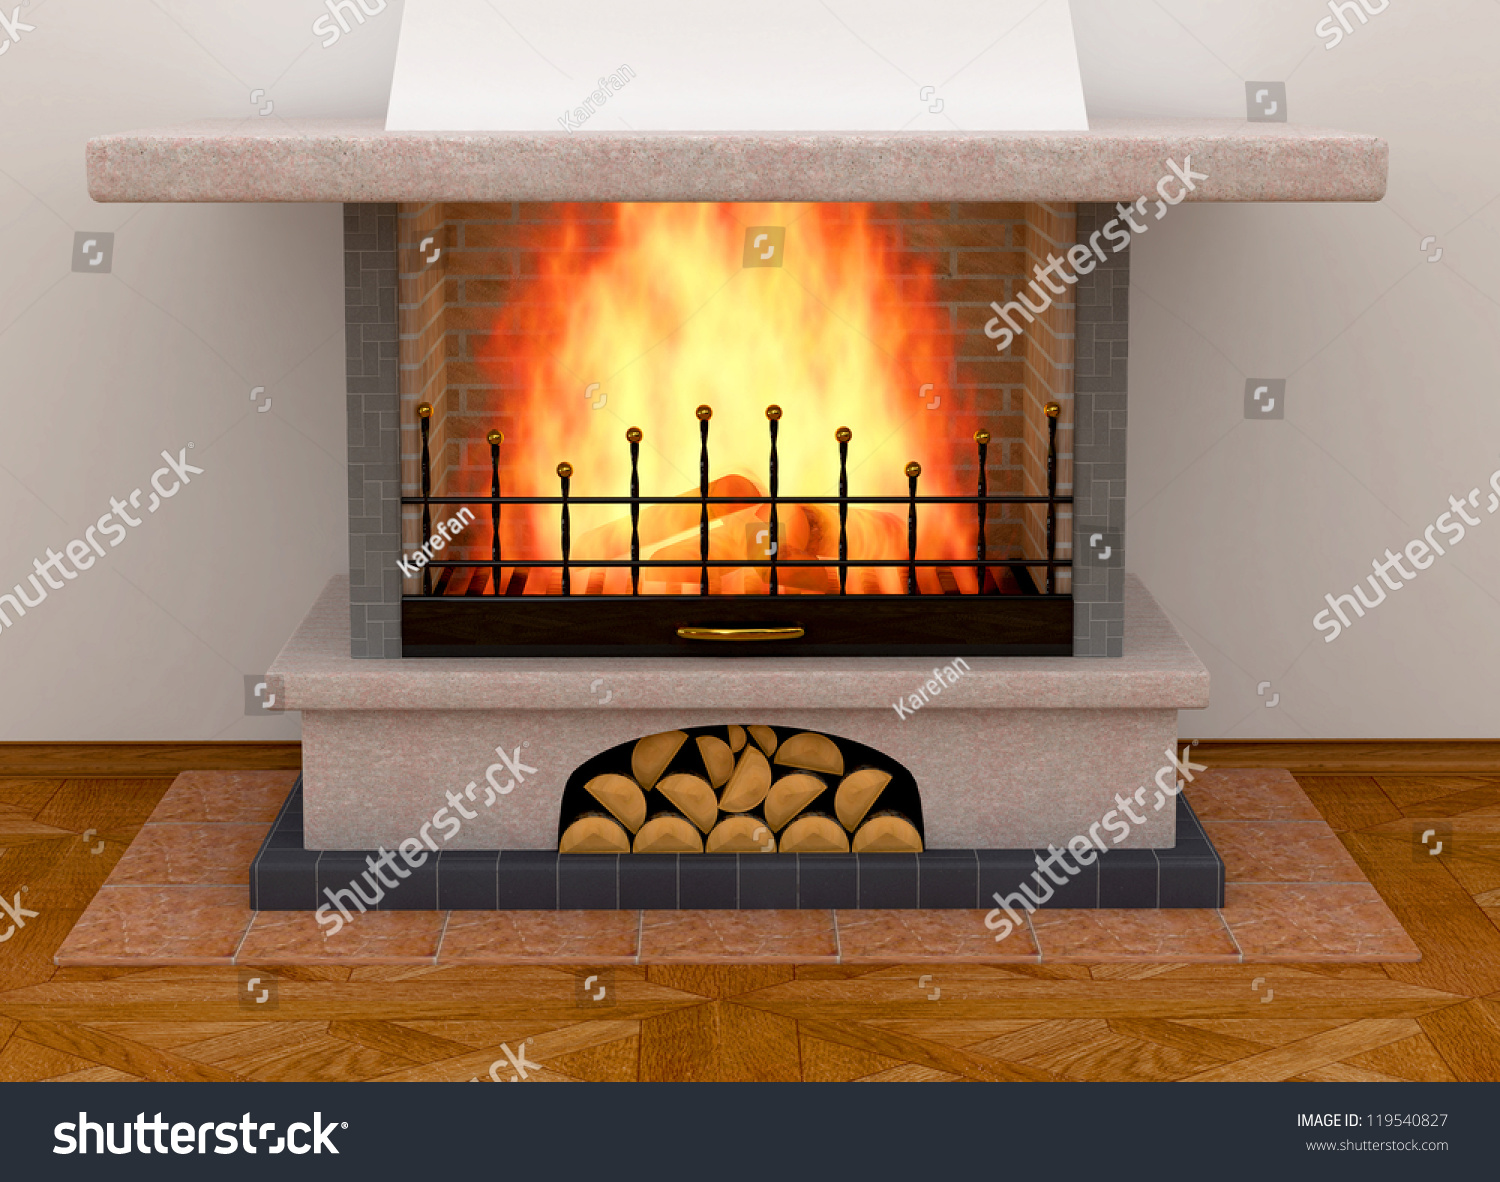 How To Clean Gas Fireplace Logs Fireplace Ideas Gallery Blog